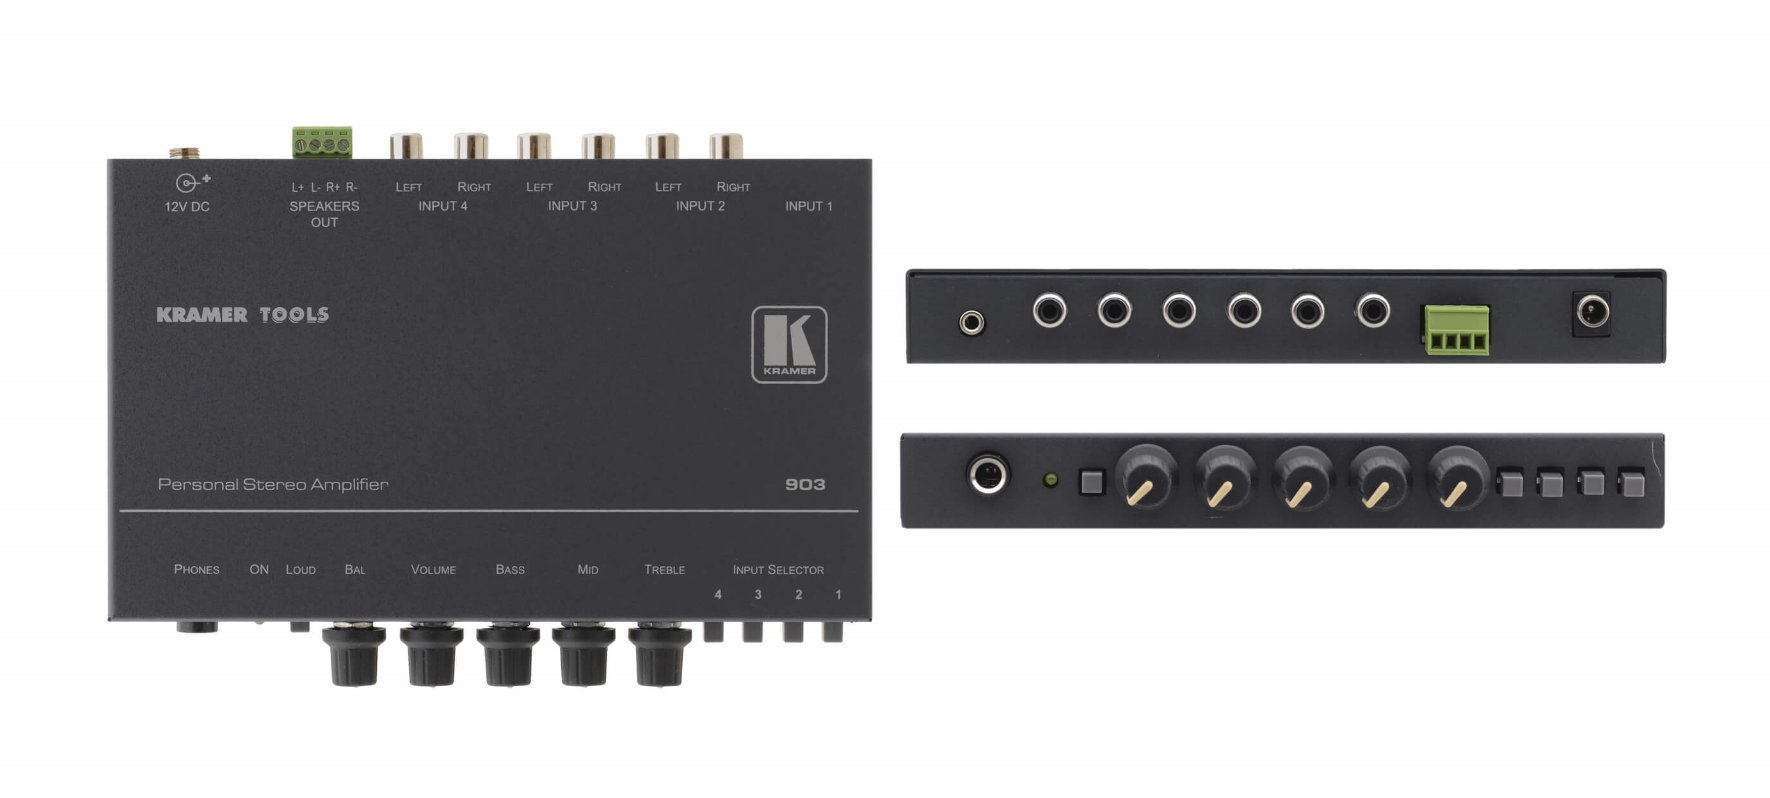 4x1 Personal Stereo Audio Amplifier & Switcher, 4 ohms